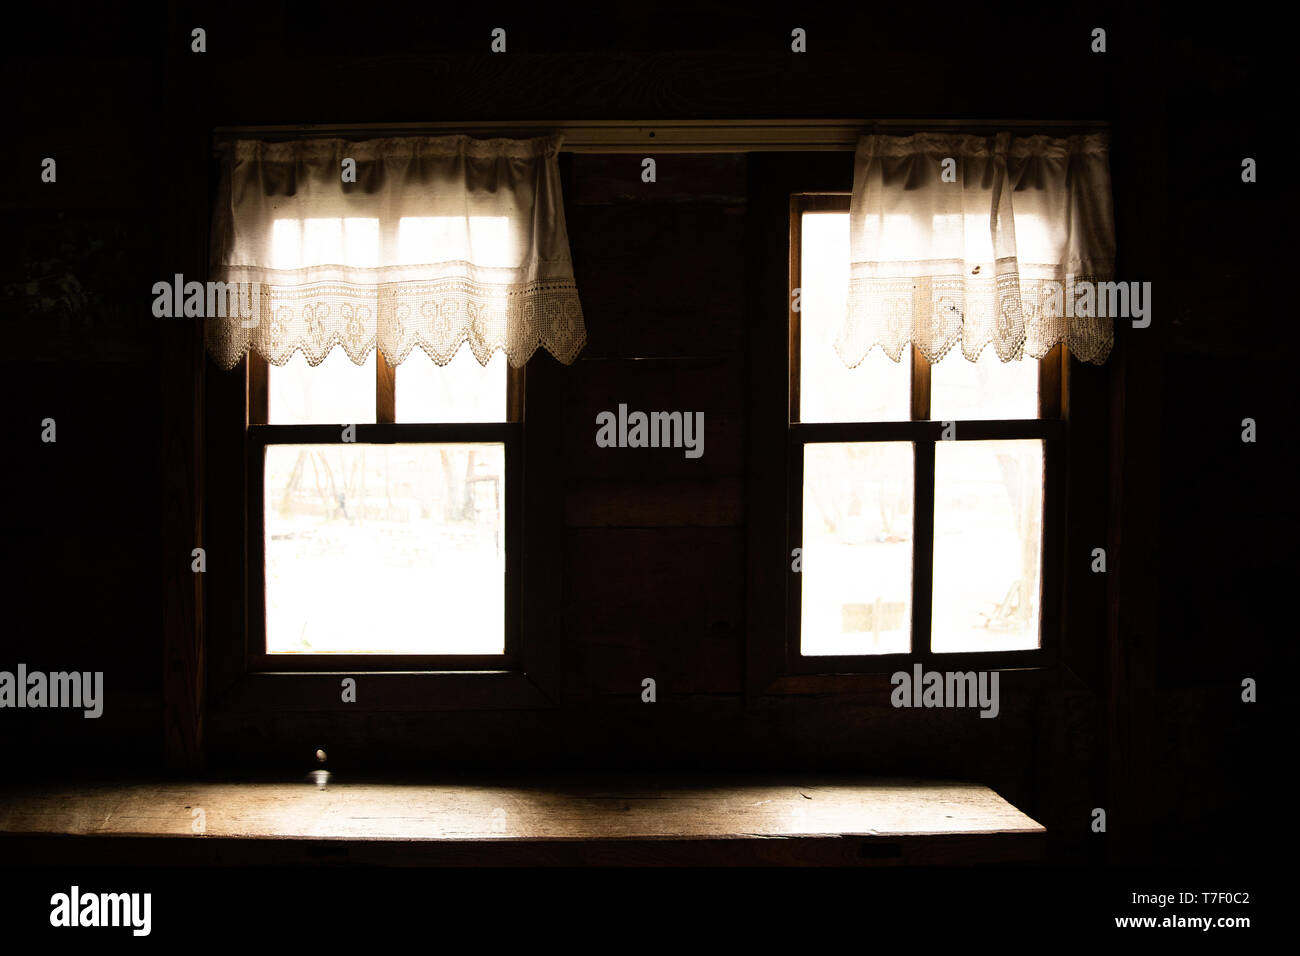 symmetric old windows inside a wood house - Stock Image